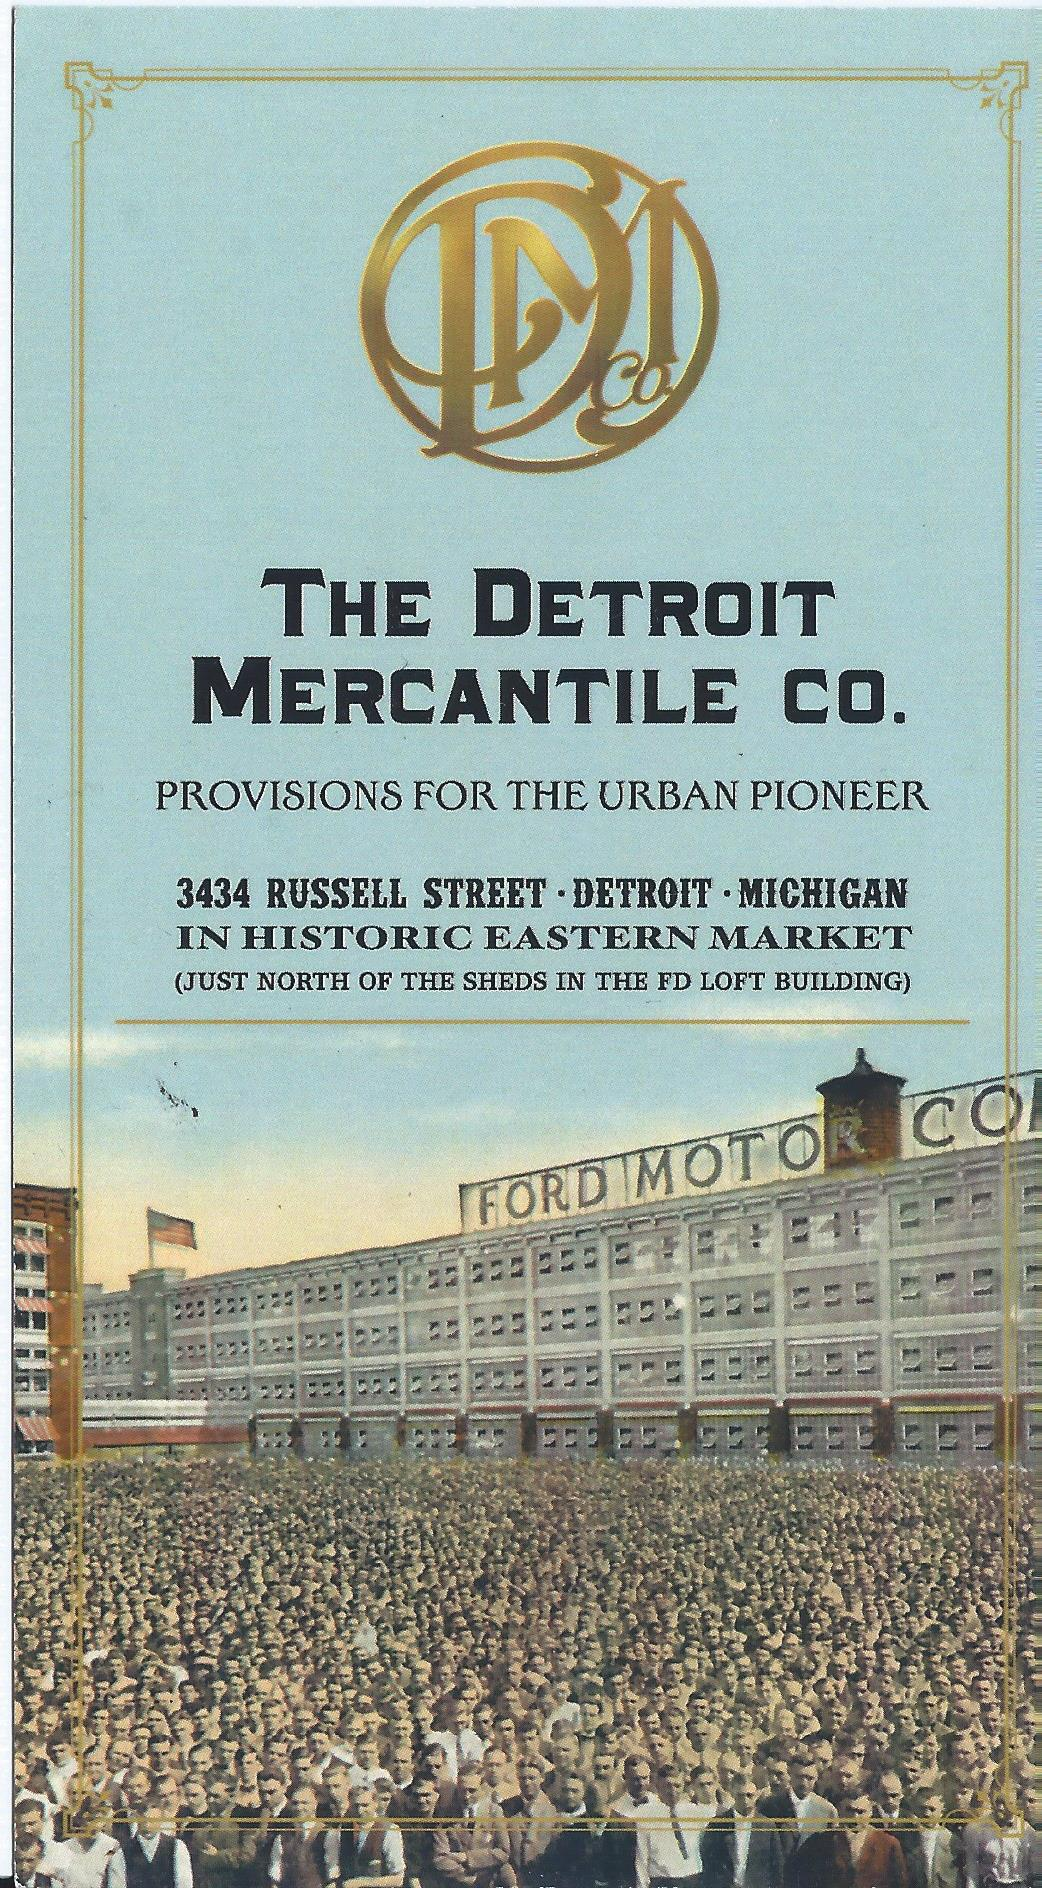 The Detroit Mercantile Co